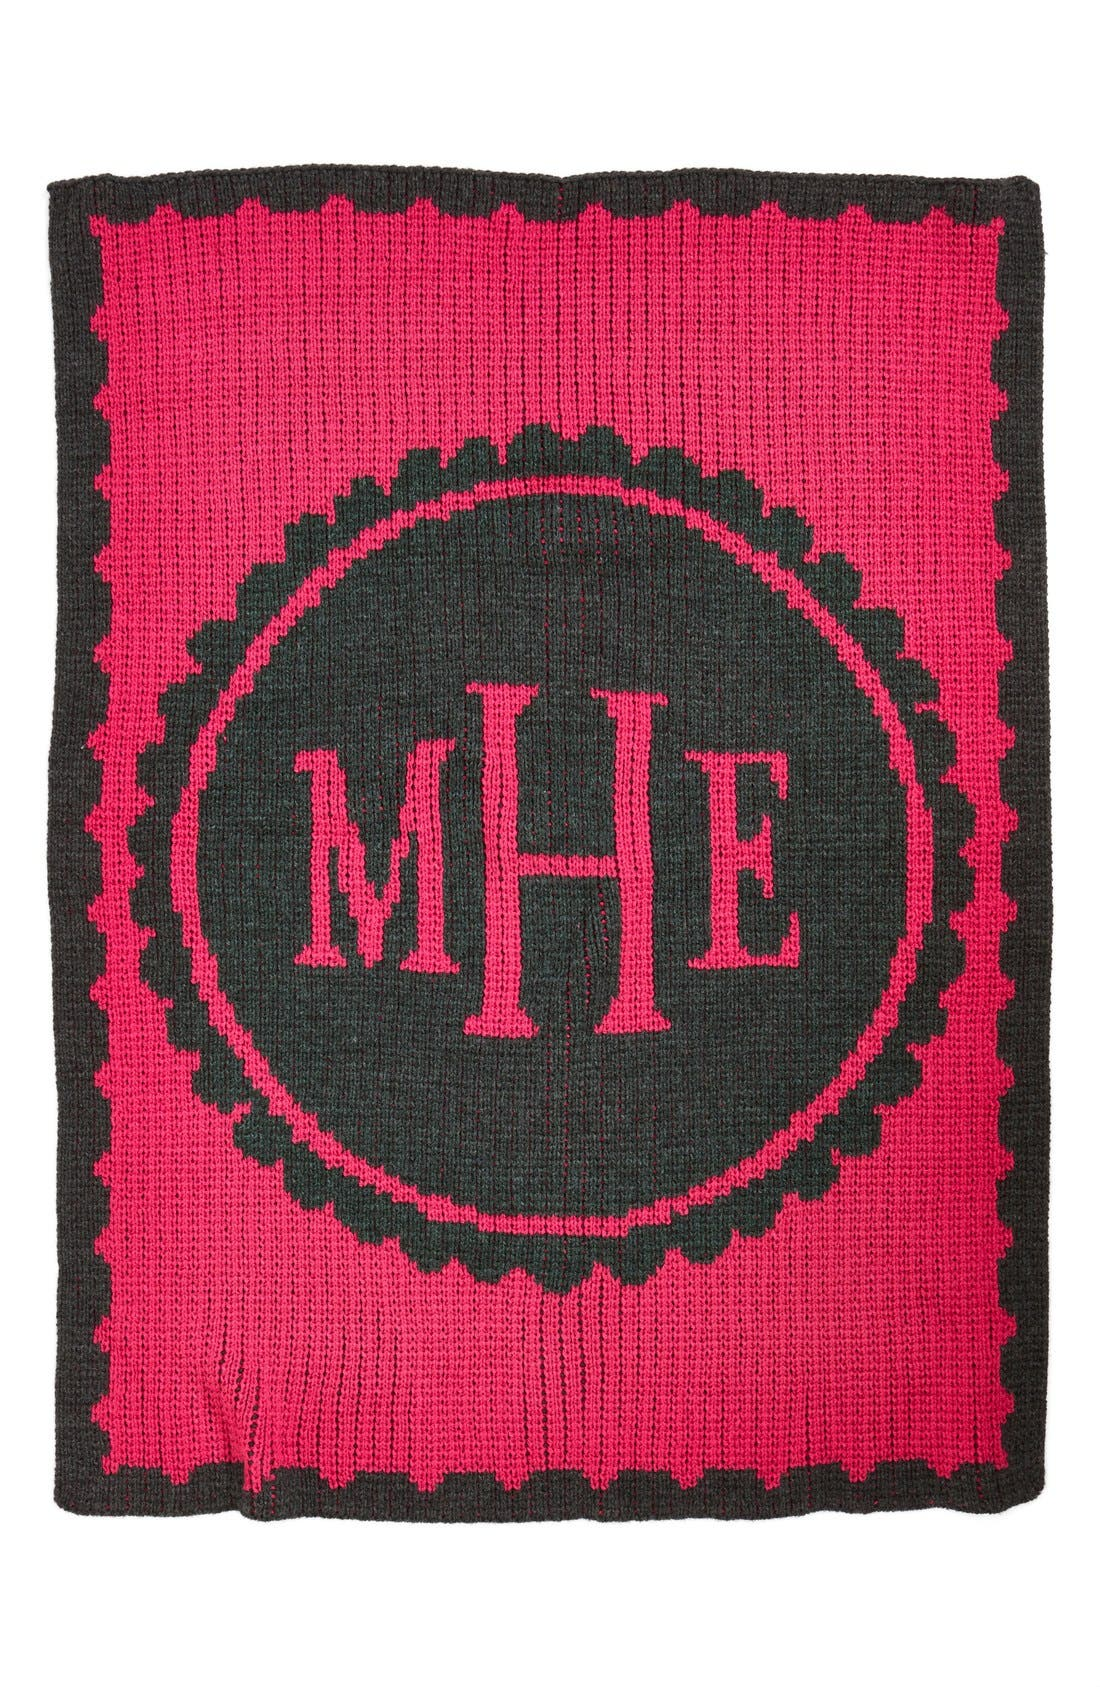 'Scalloped - Large' Personalized Blanket,                         Main,                         color, Fuschia/ Charcoal Grey